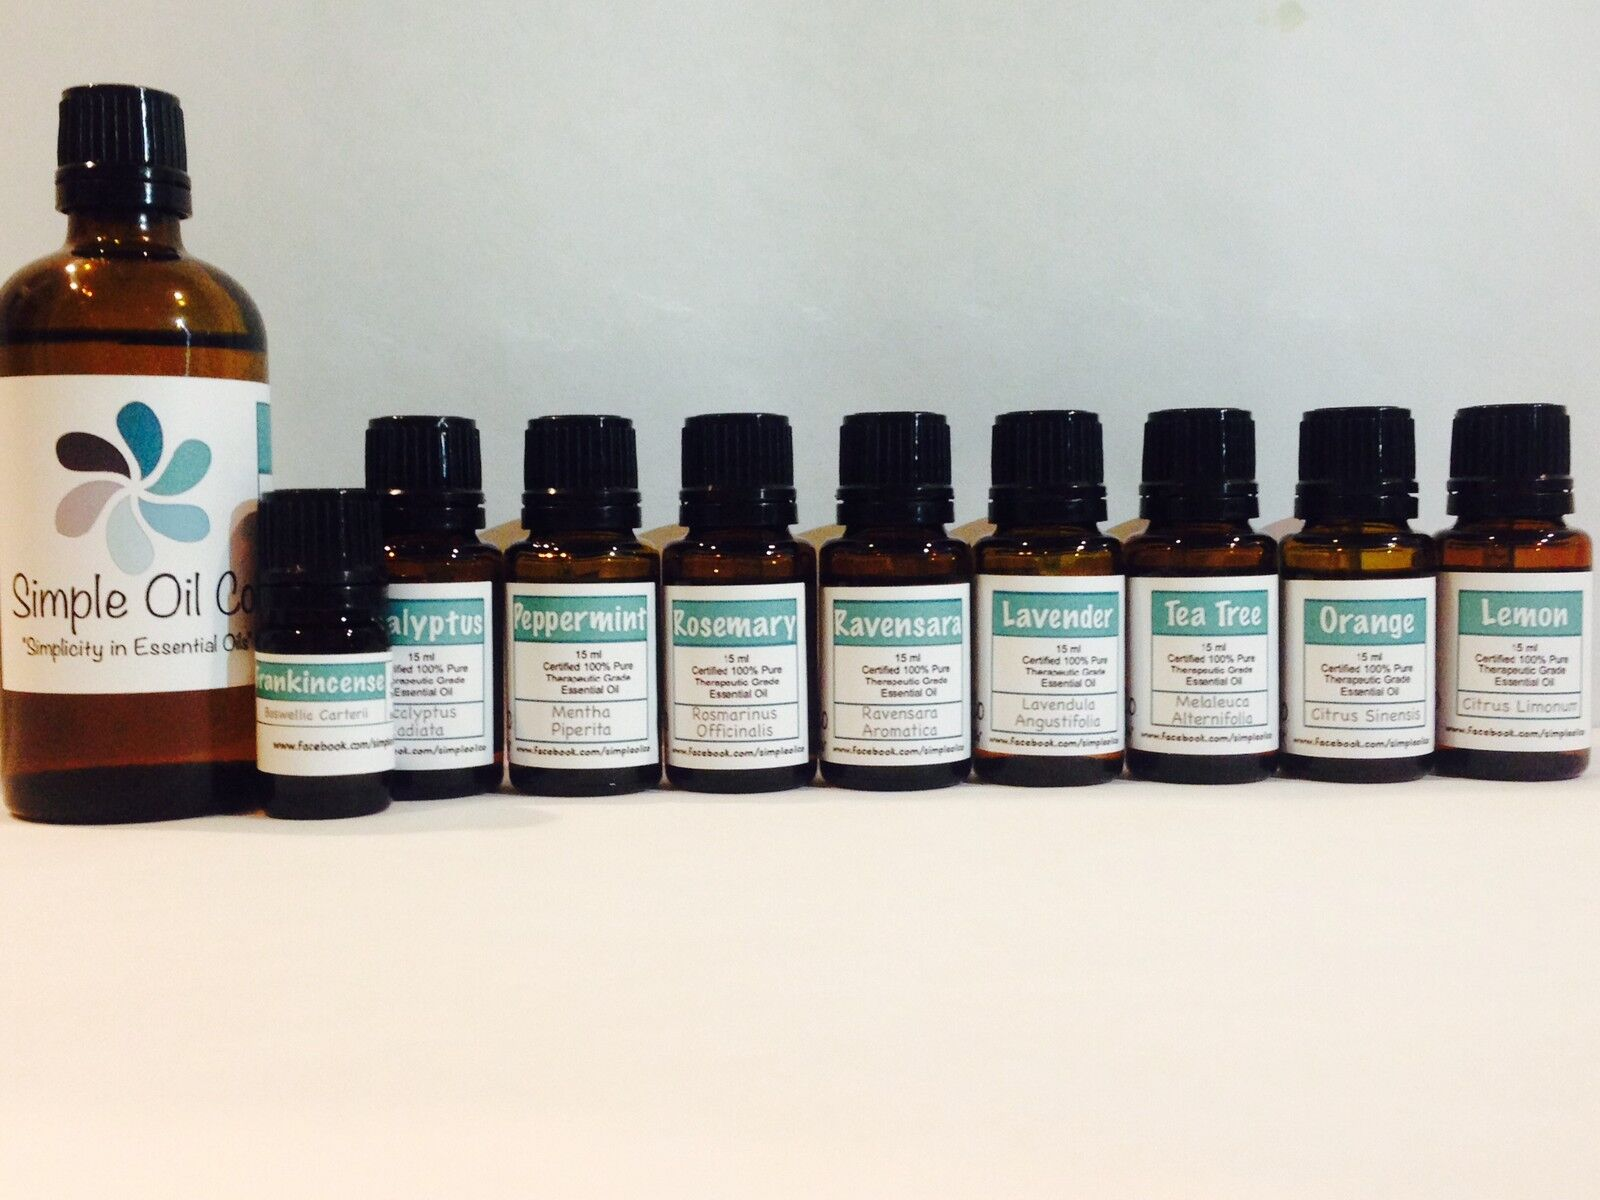 The Simple Oil Co